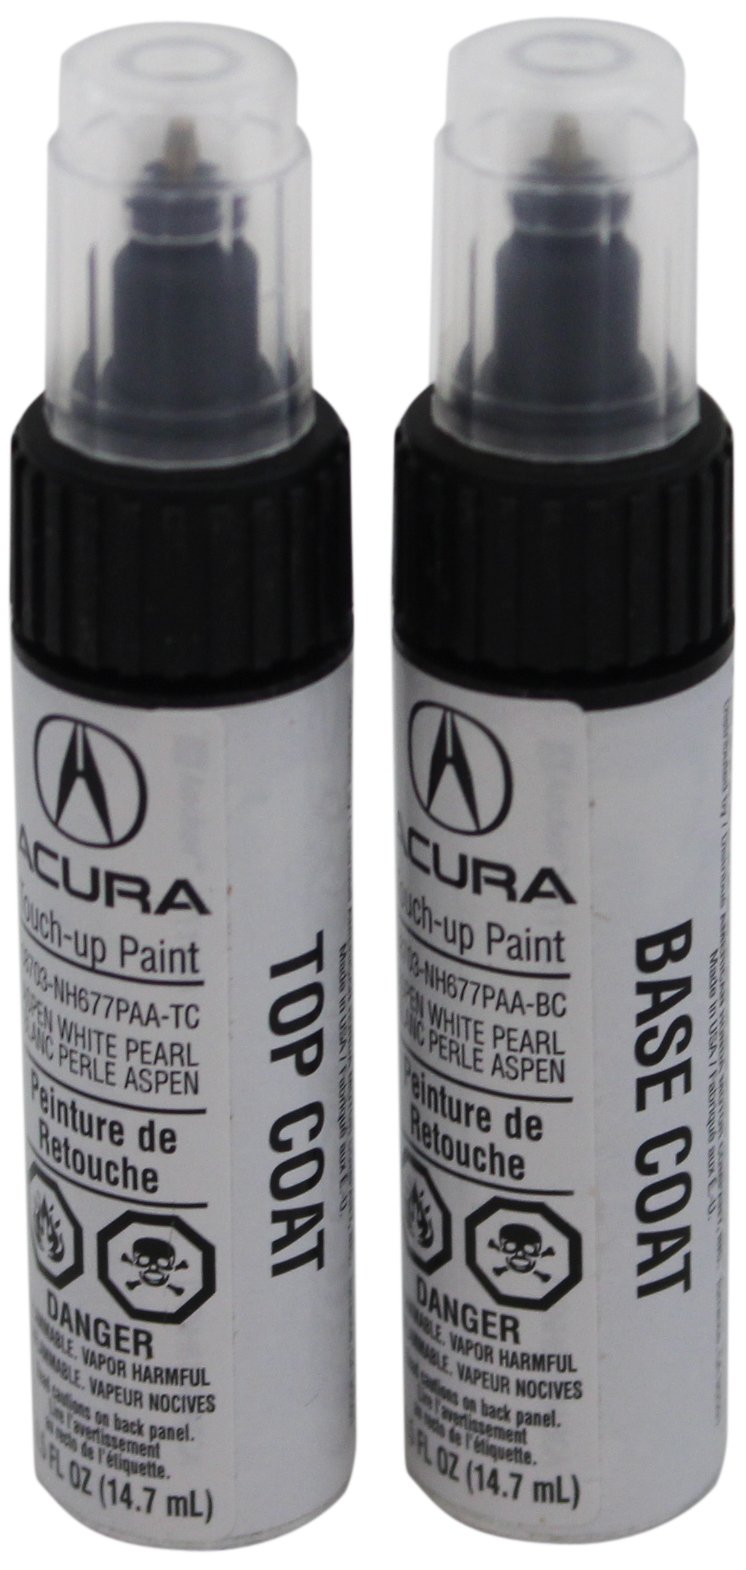 Acura Genuine Accessories 08703-NH677PAA-2P Aspen White Pearl Touch-Up Paint Pen - 0.5 fl. oz.